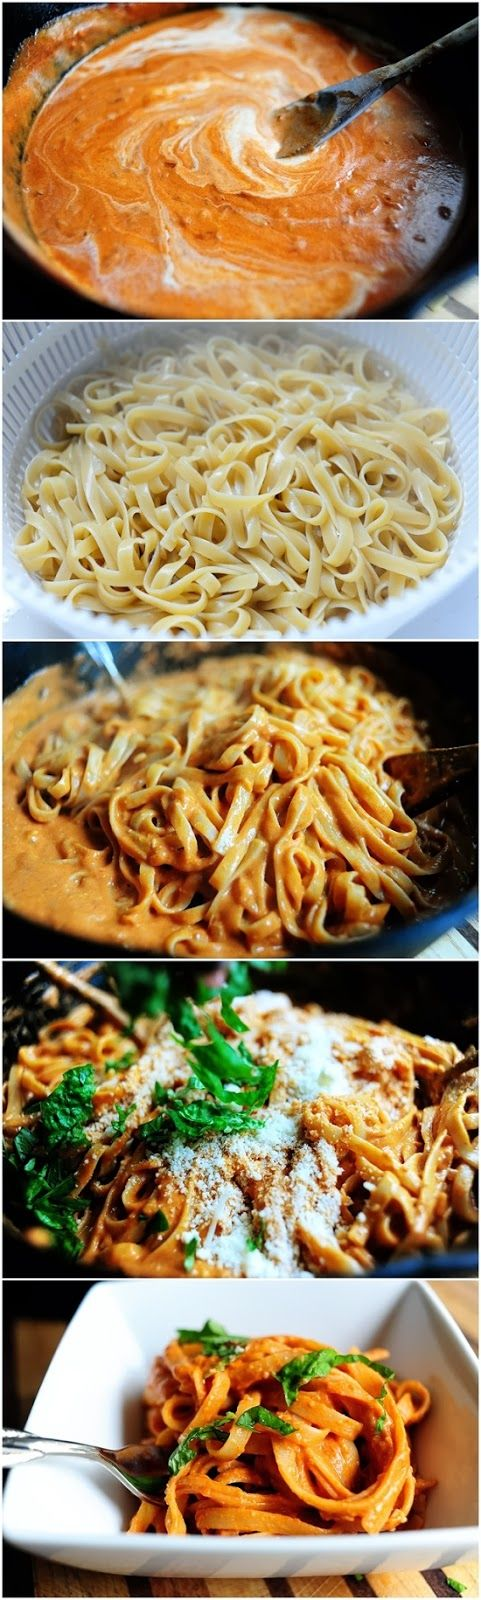 Pasta with Tomato Cream Sauce. Perfect simple dinner.